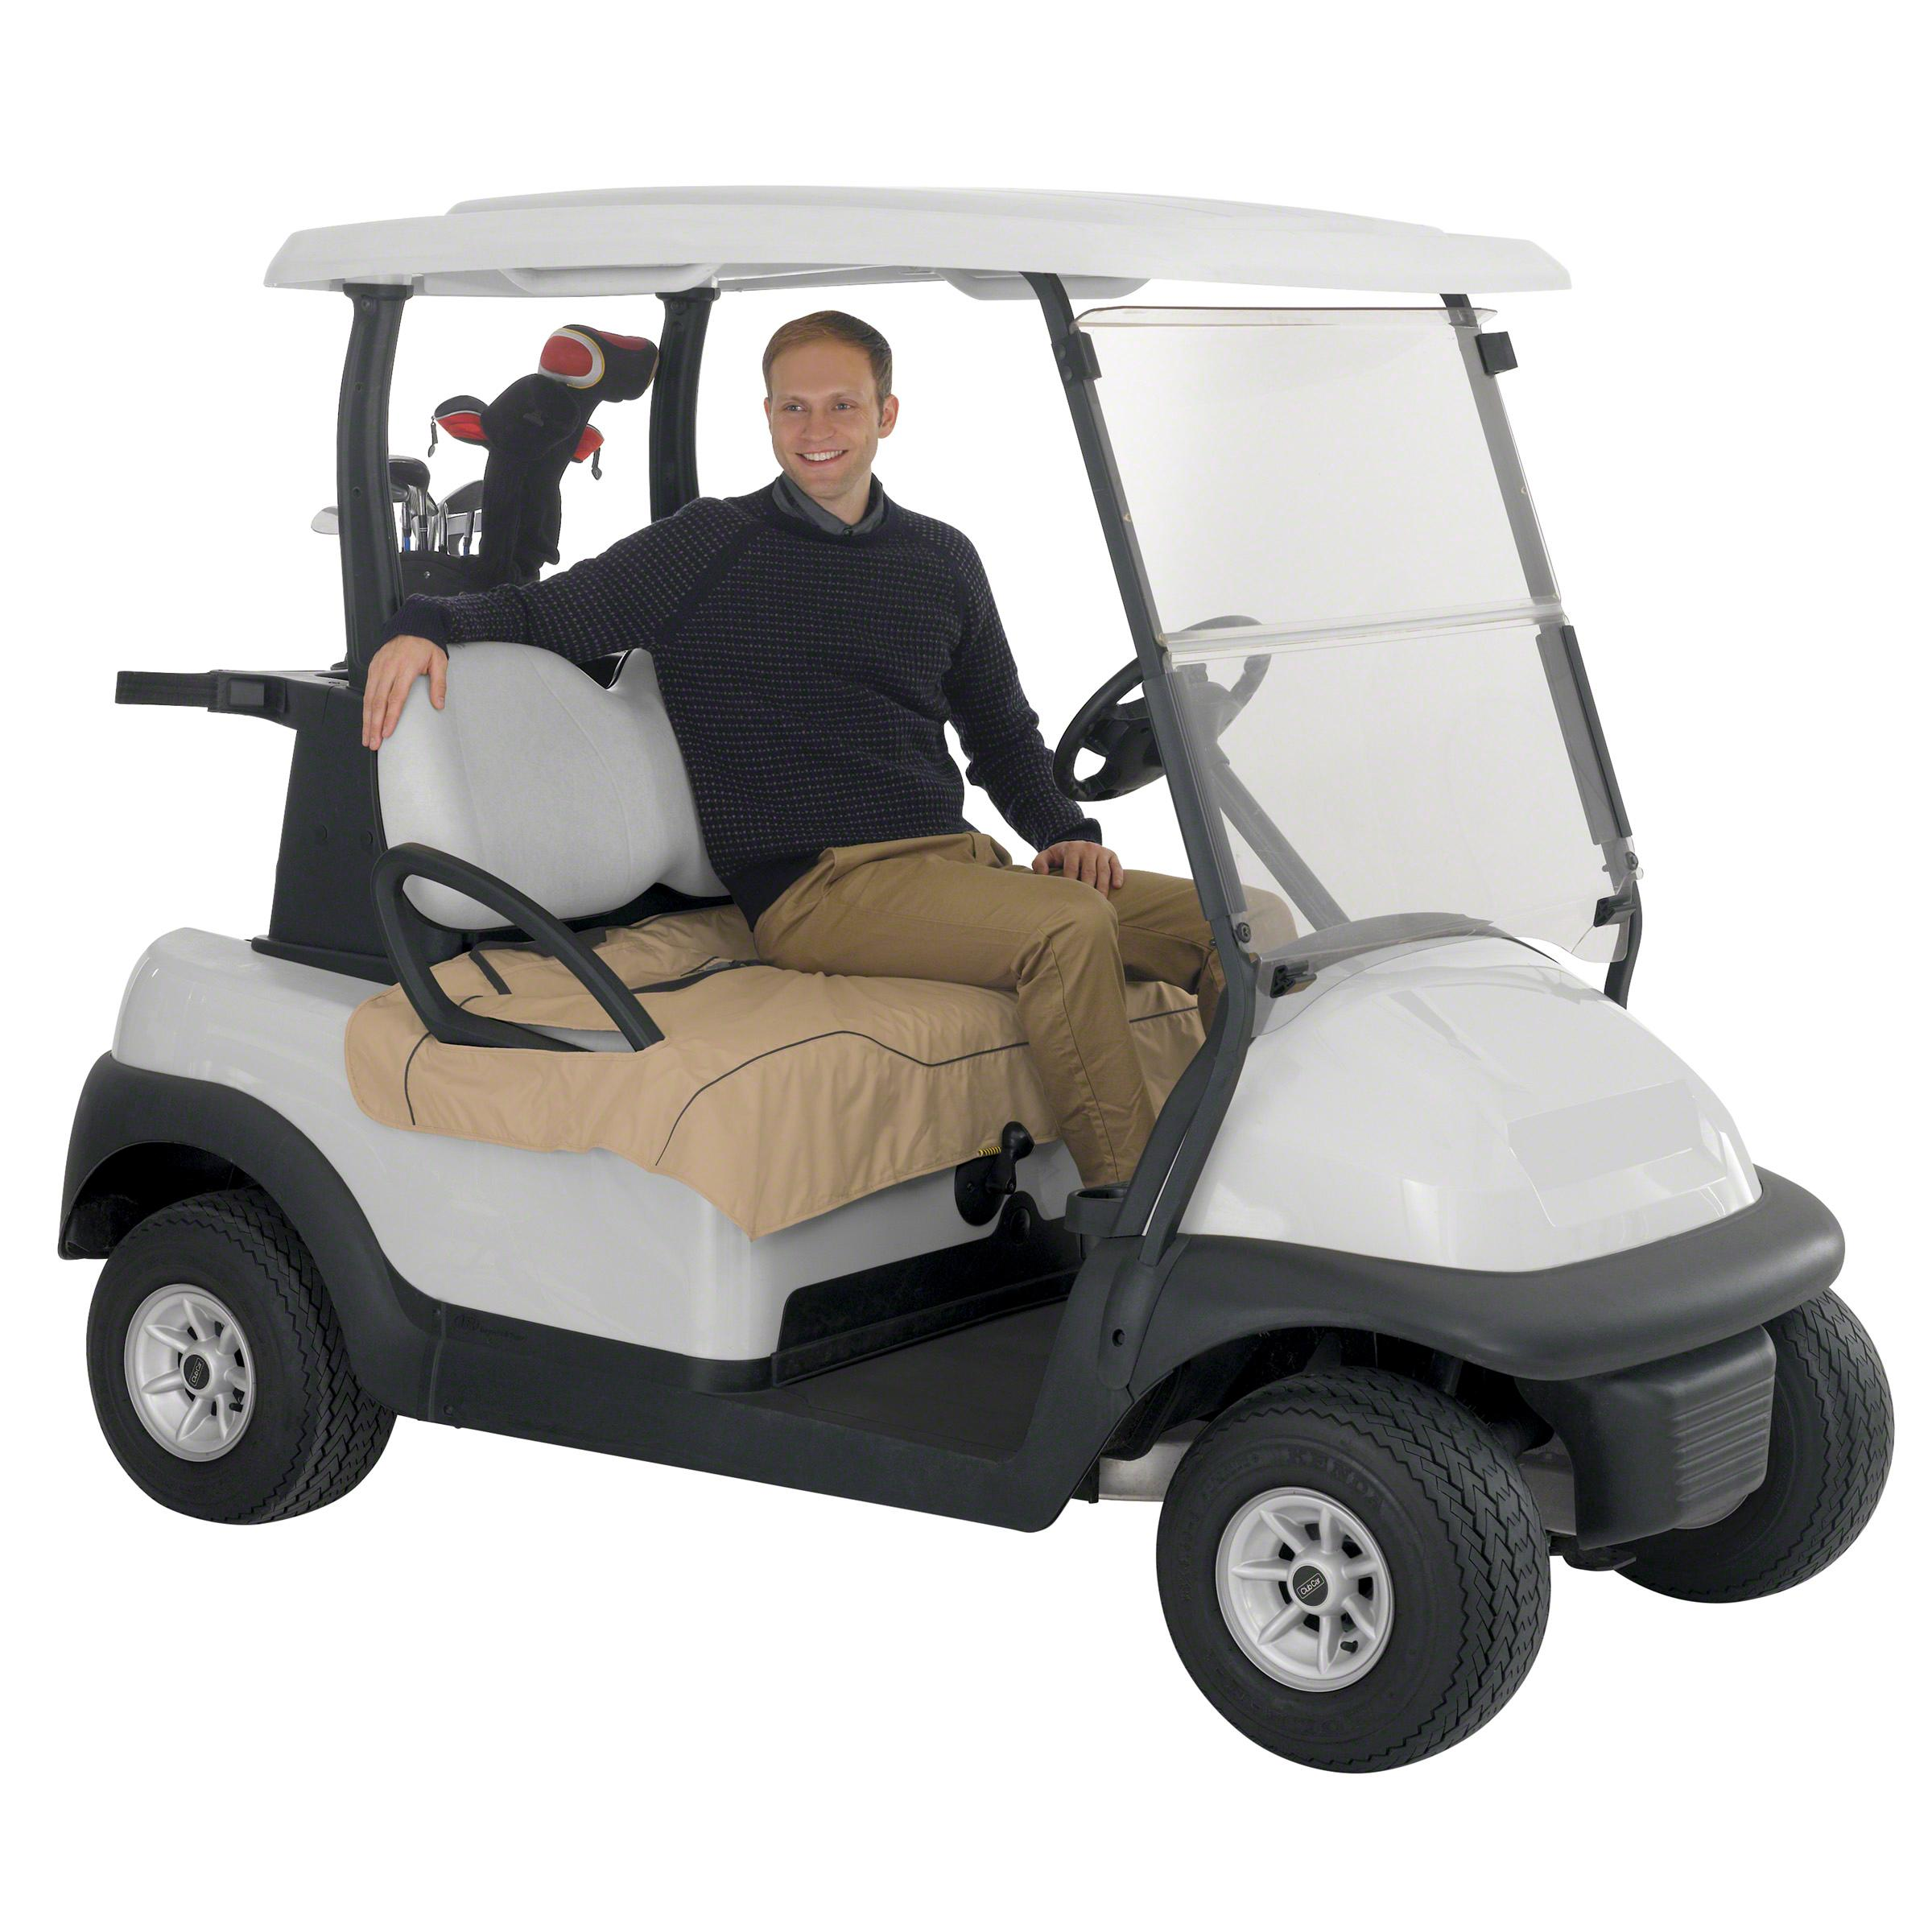 Find great deals on eBay forFind great deals on eBay forgolf cart seat blanketandFind great deals on eBay forFind great deals on eBay forgolf cart seat blanketandgolf cart seatcovers. Shop with confidence.